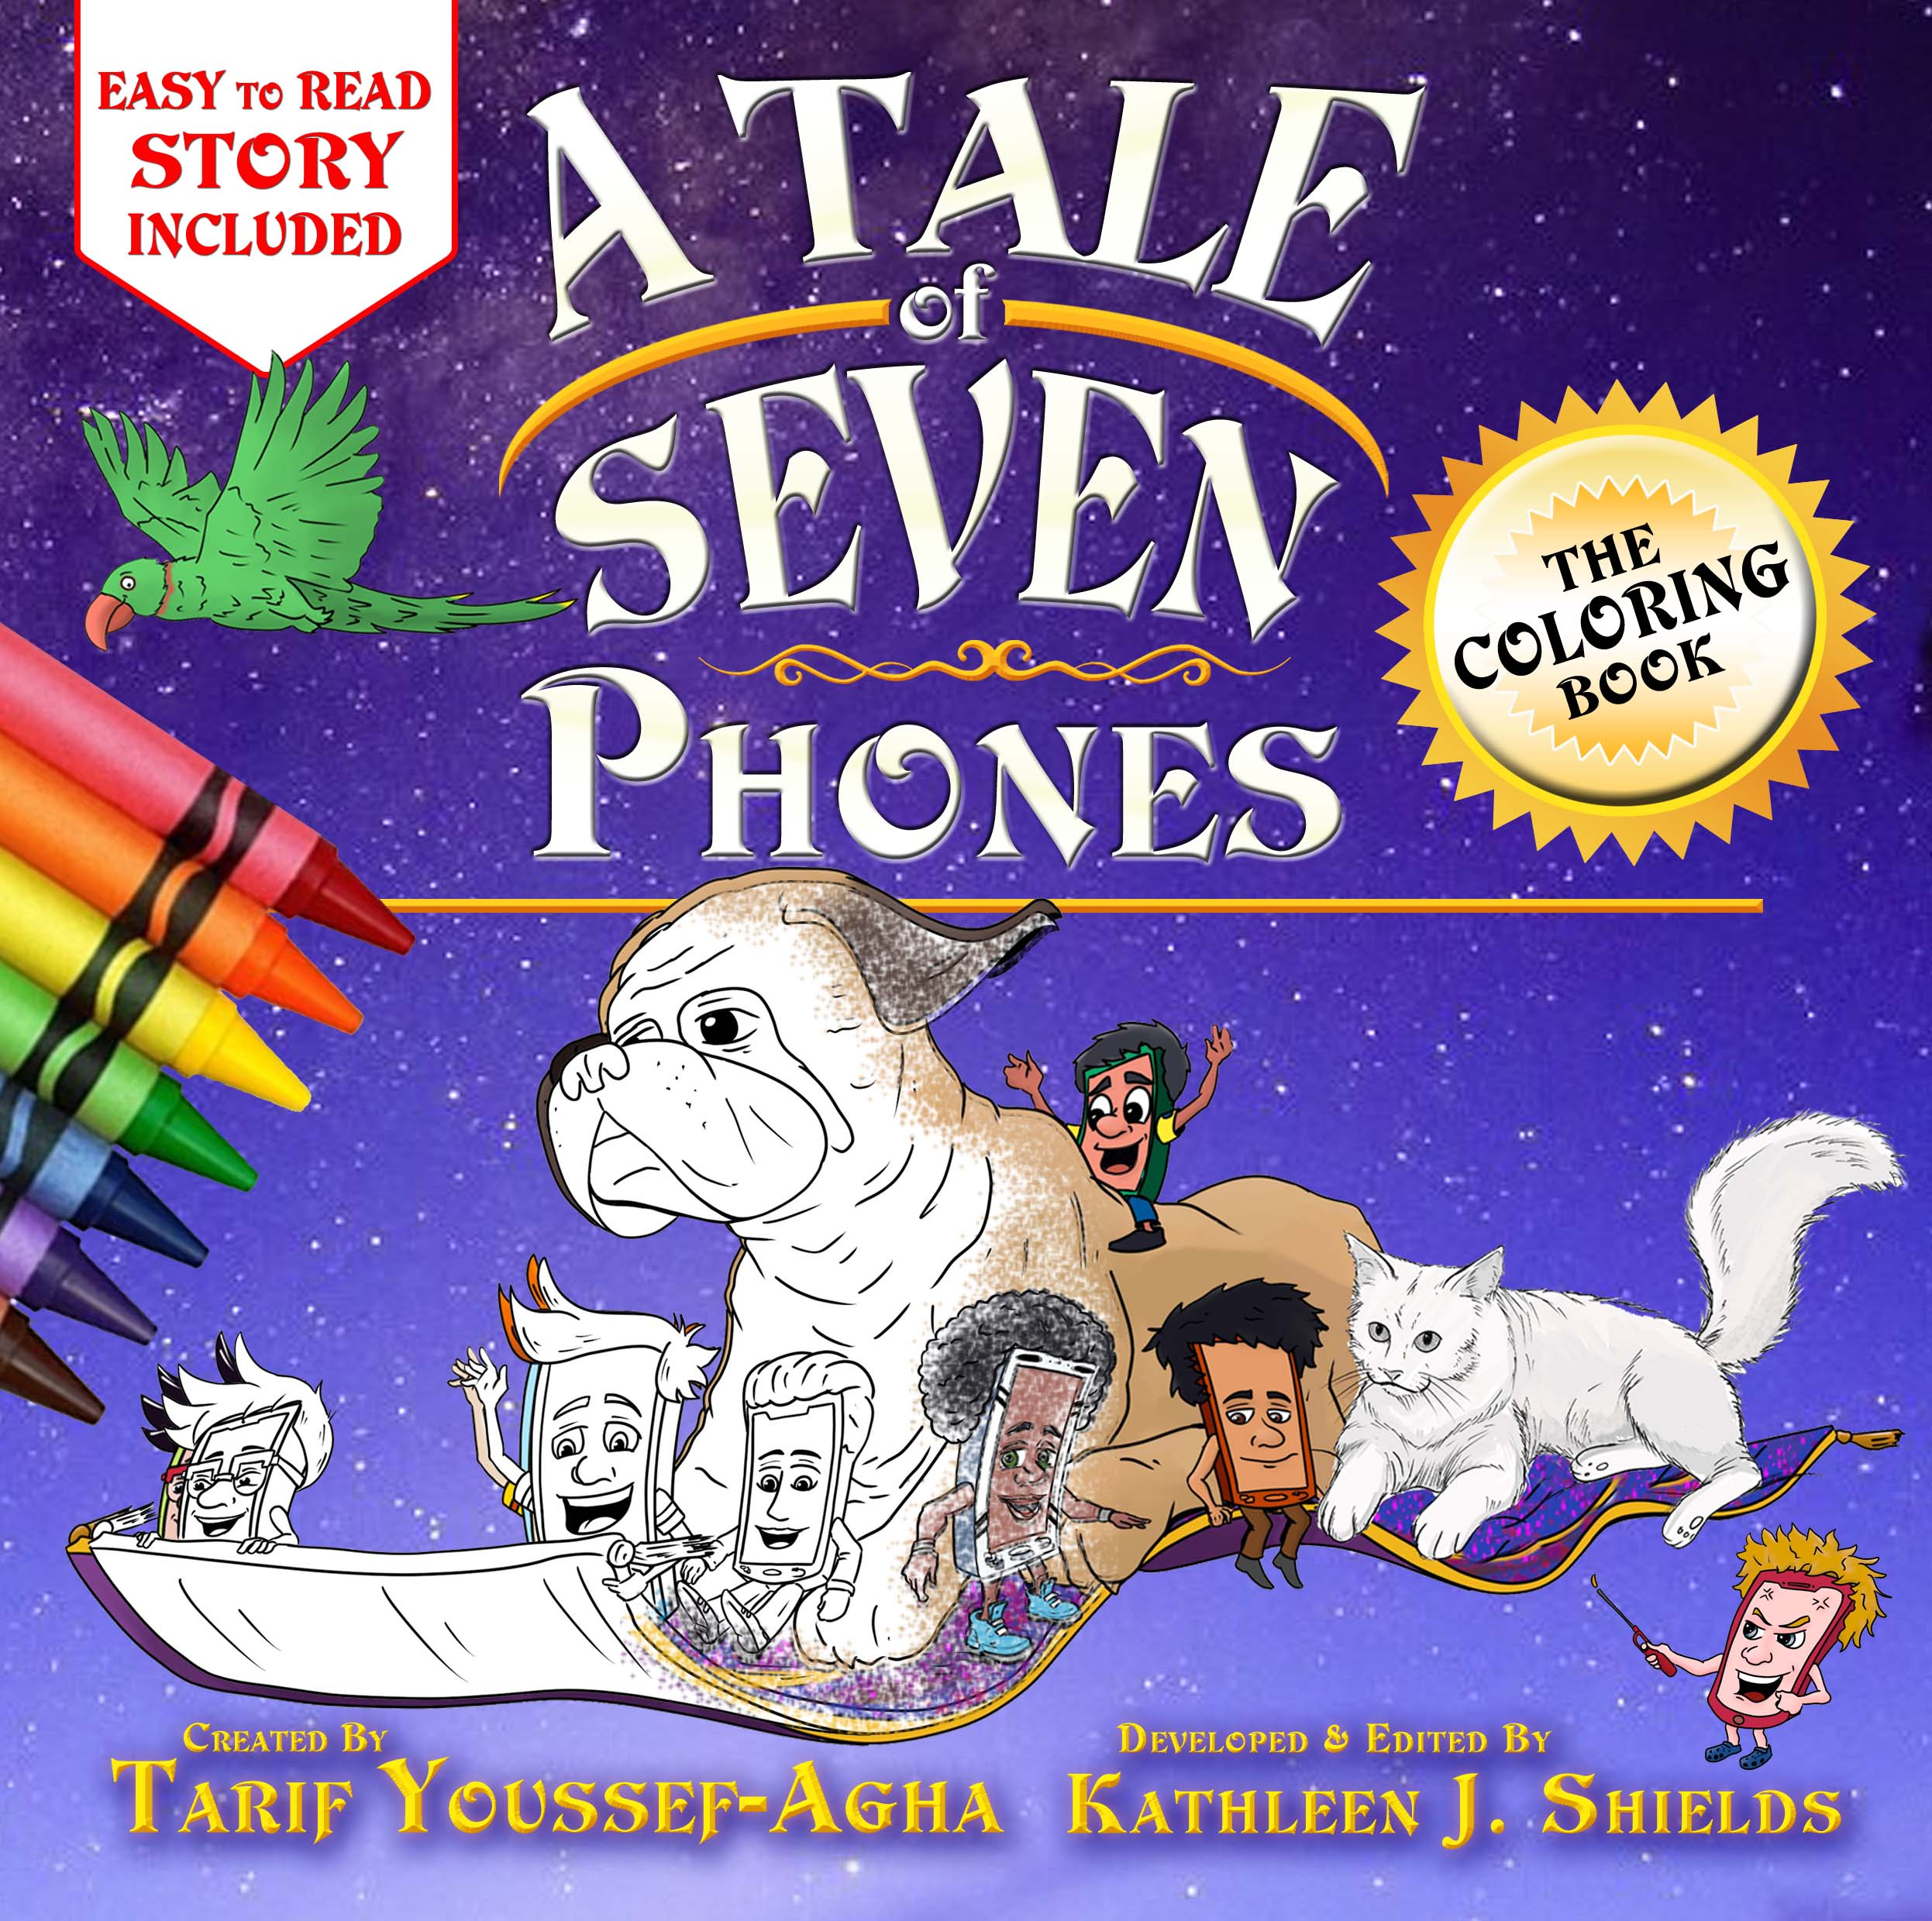 A Tale of Seven Phones, The Coloring book by author Tarif Youssef-Agha